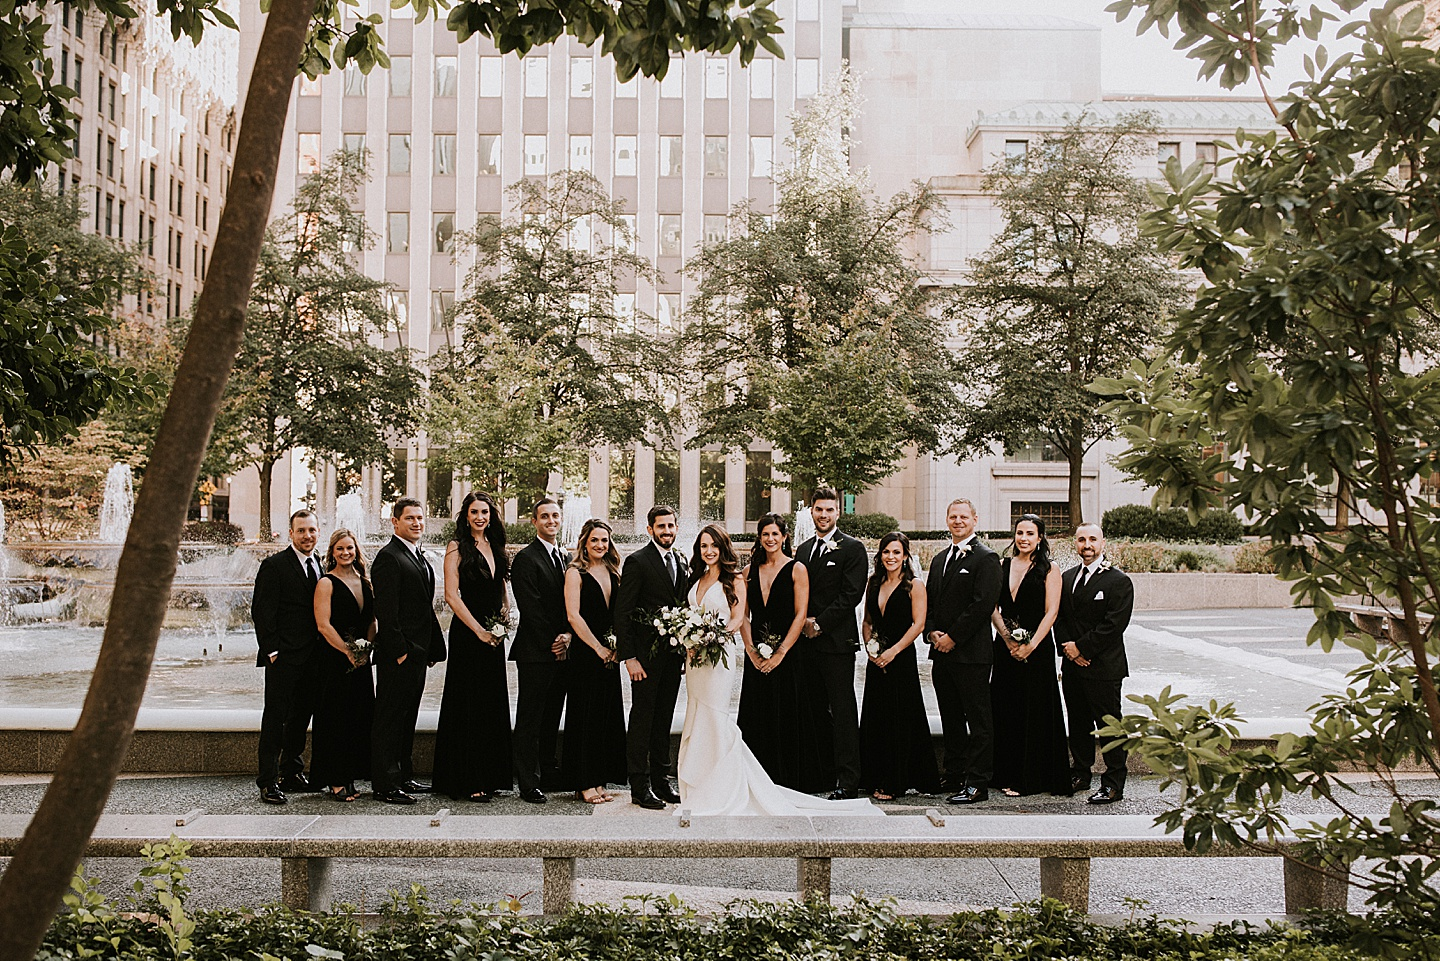 Wedding party portrait in Pittsburgh